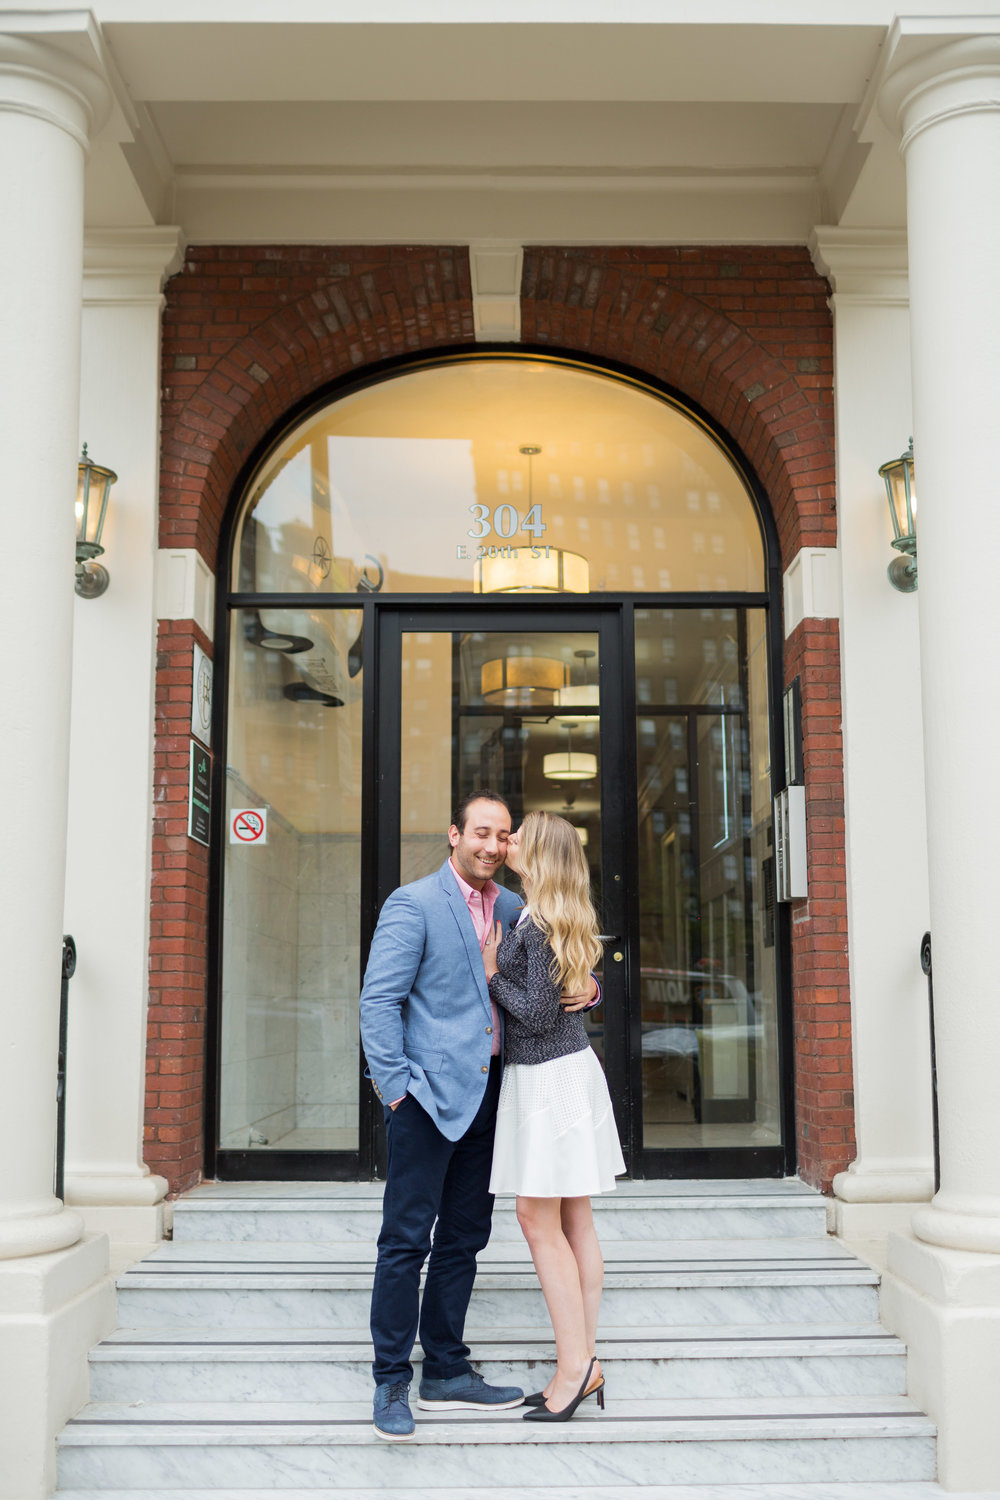 Melissa Kruse Photography - Courtney & JP Gramercy NYC Engagement Photos-107.jpg